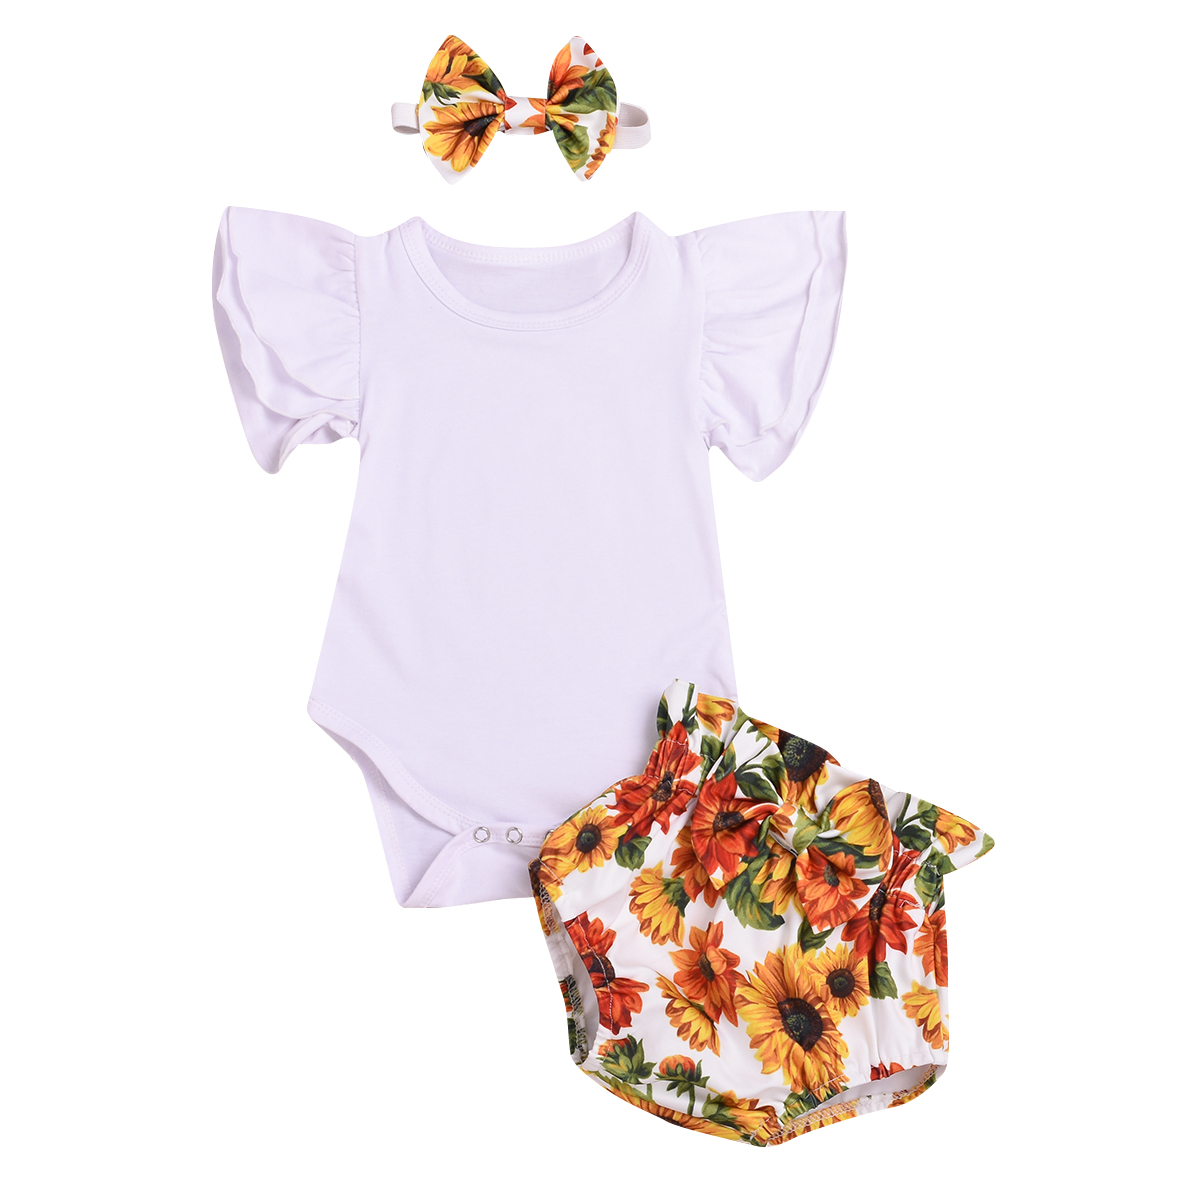 2020 New Newborn Baby Clothing Set  3pcs Newborn Toddler Baby Girl Romper Top Shorts Headband Clothes Outfit Set